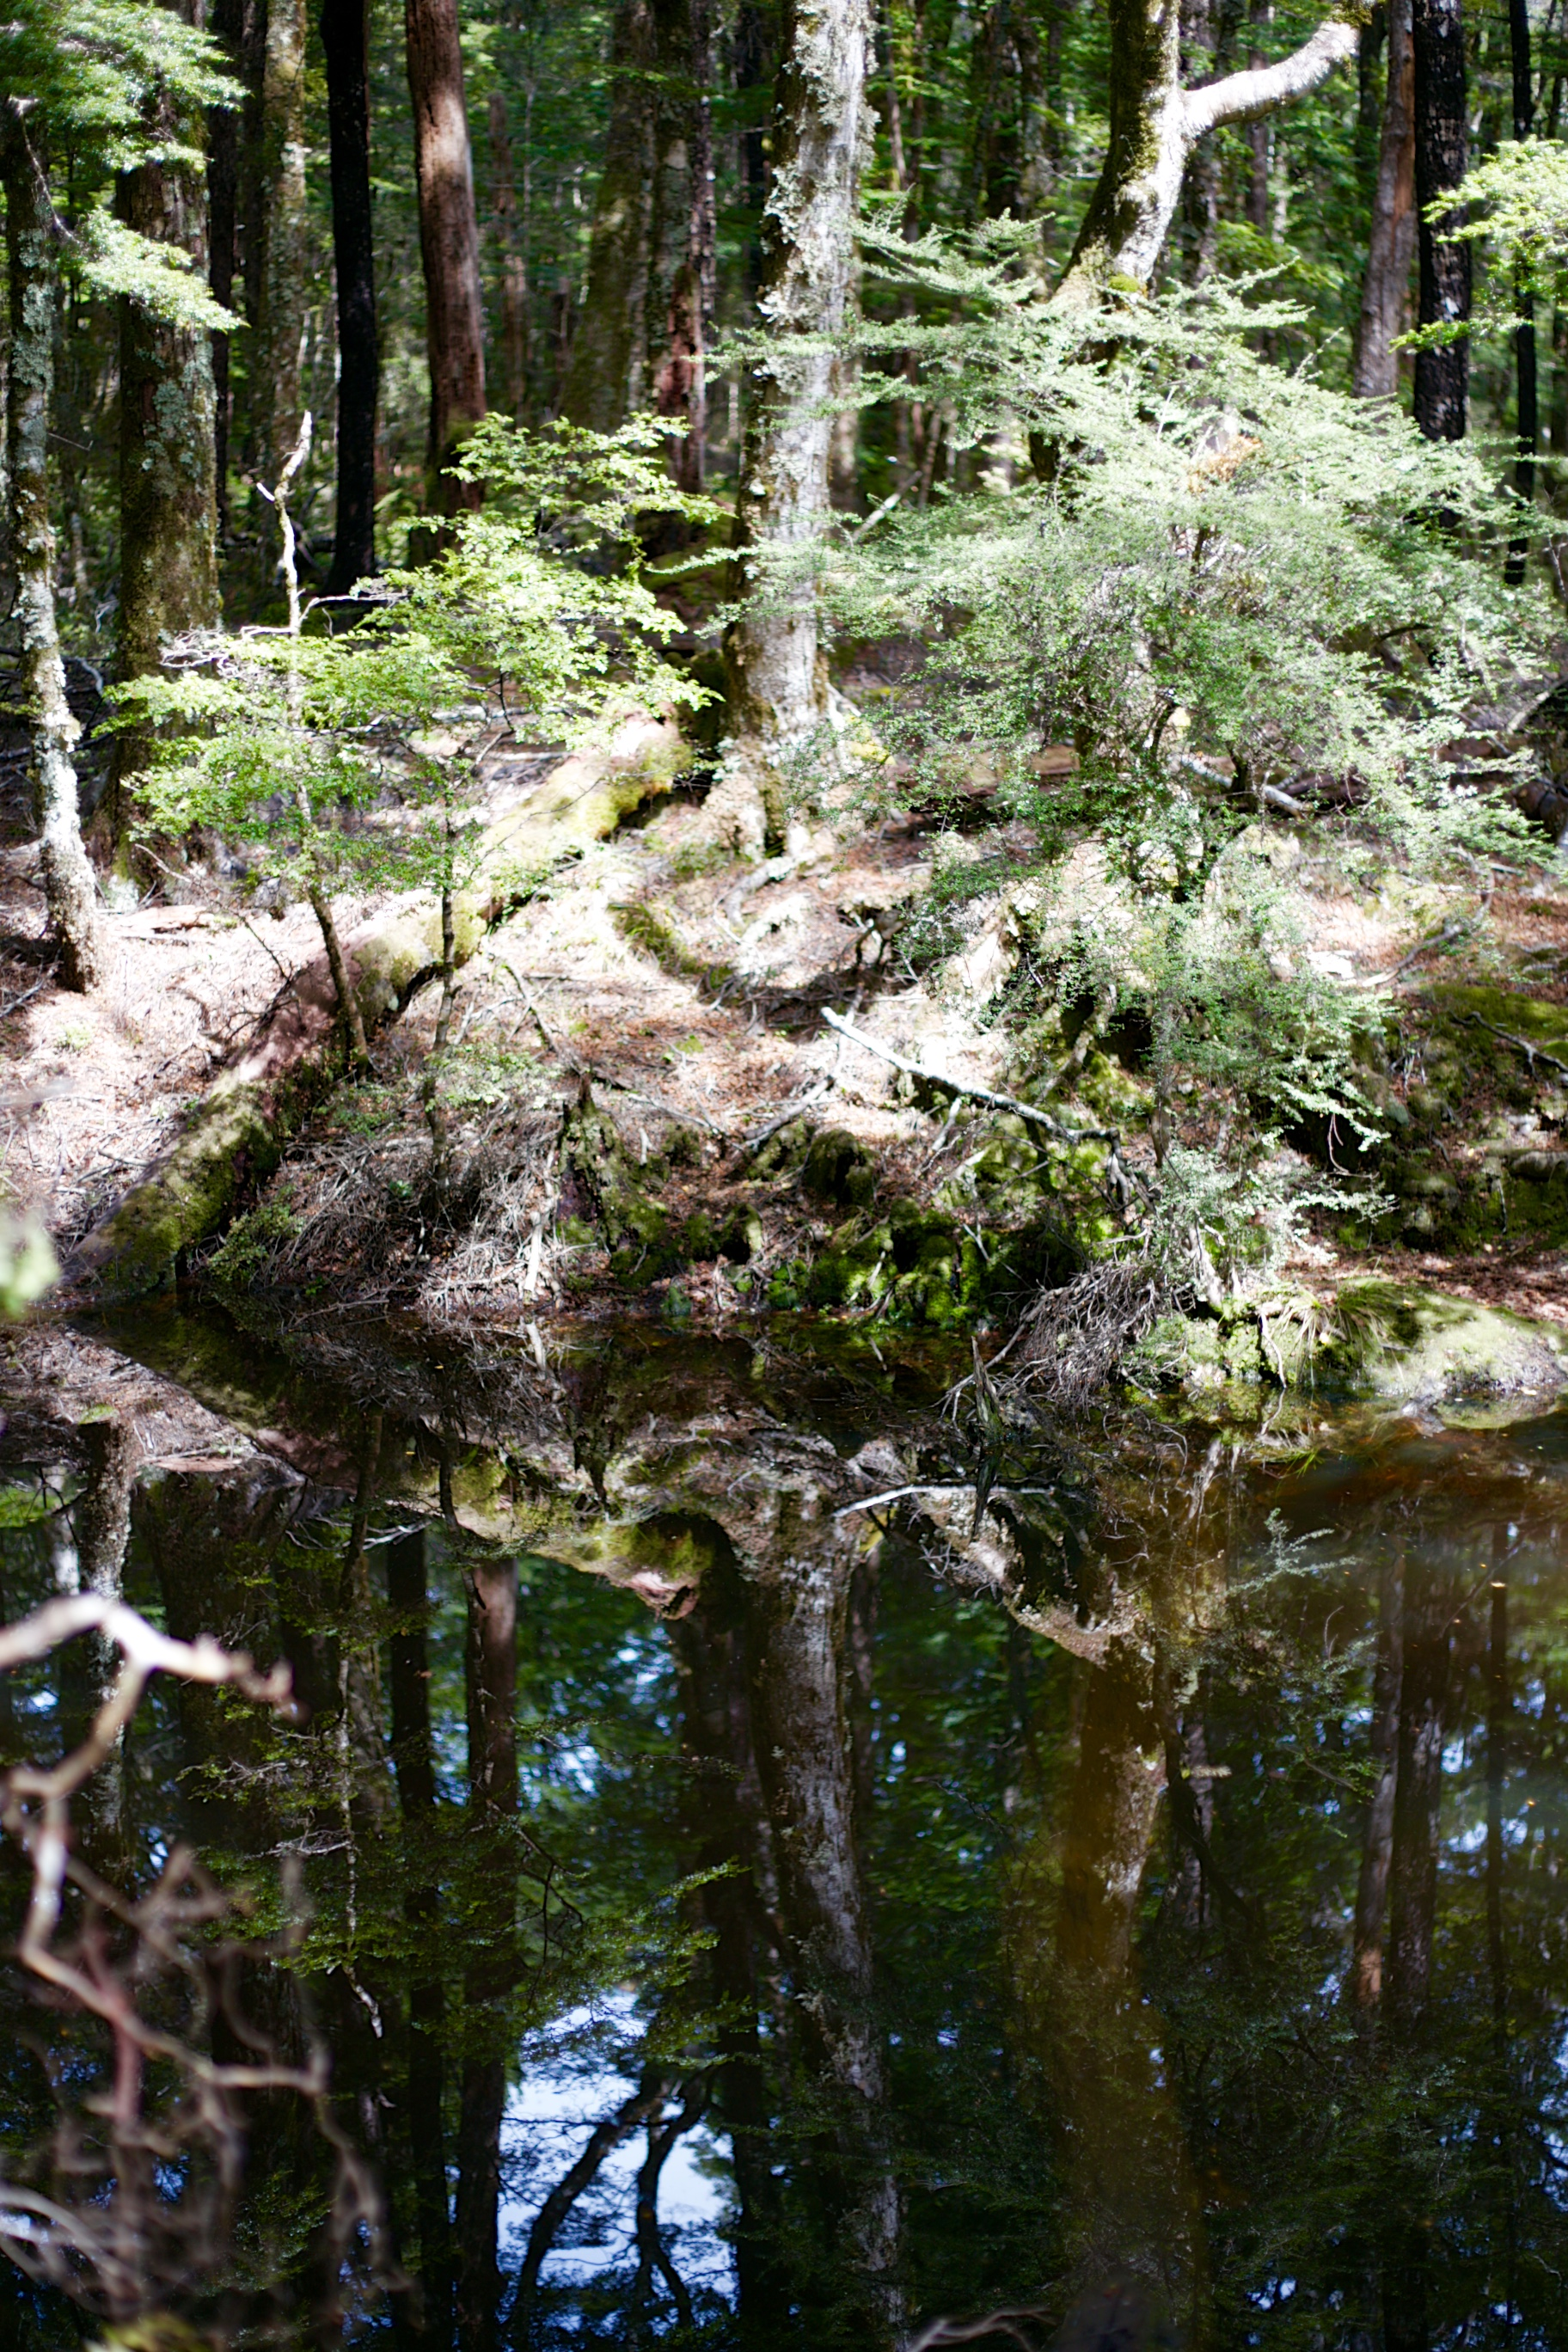 A tree trunk reflected in a mirror pool.